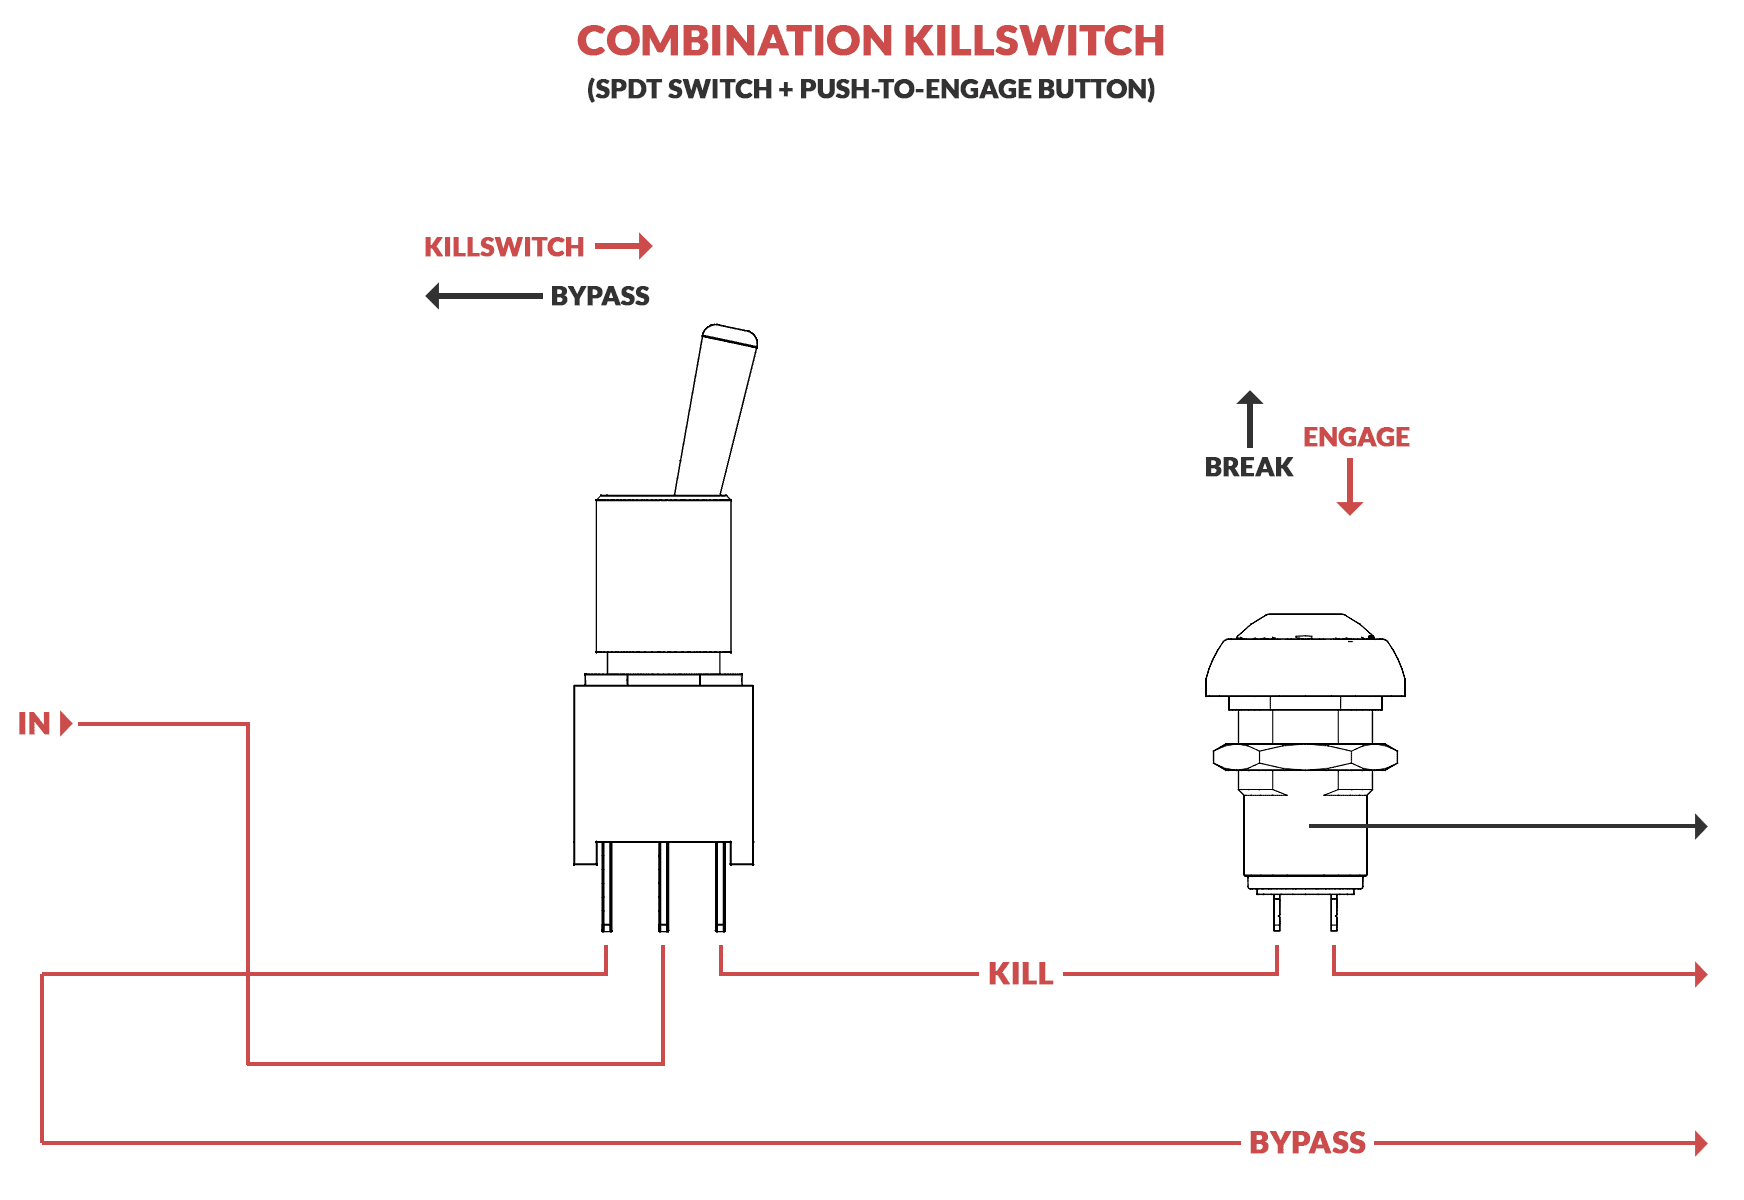 Combination Killswitch spdt switch wiring diagram foot wiring diagram data